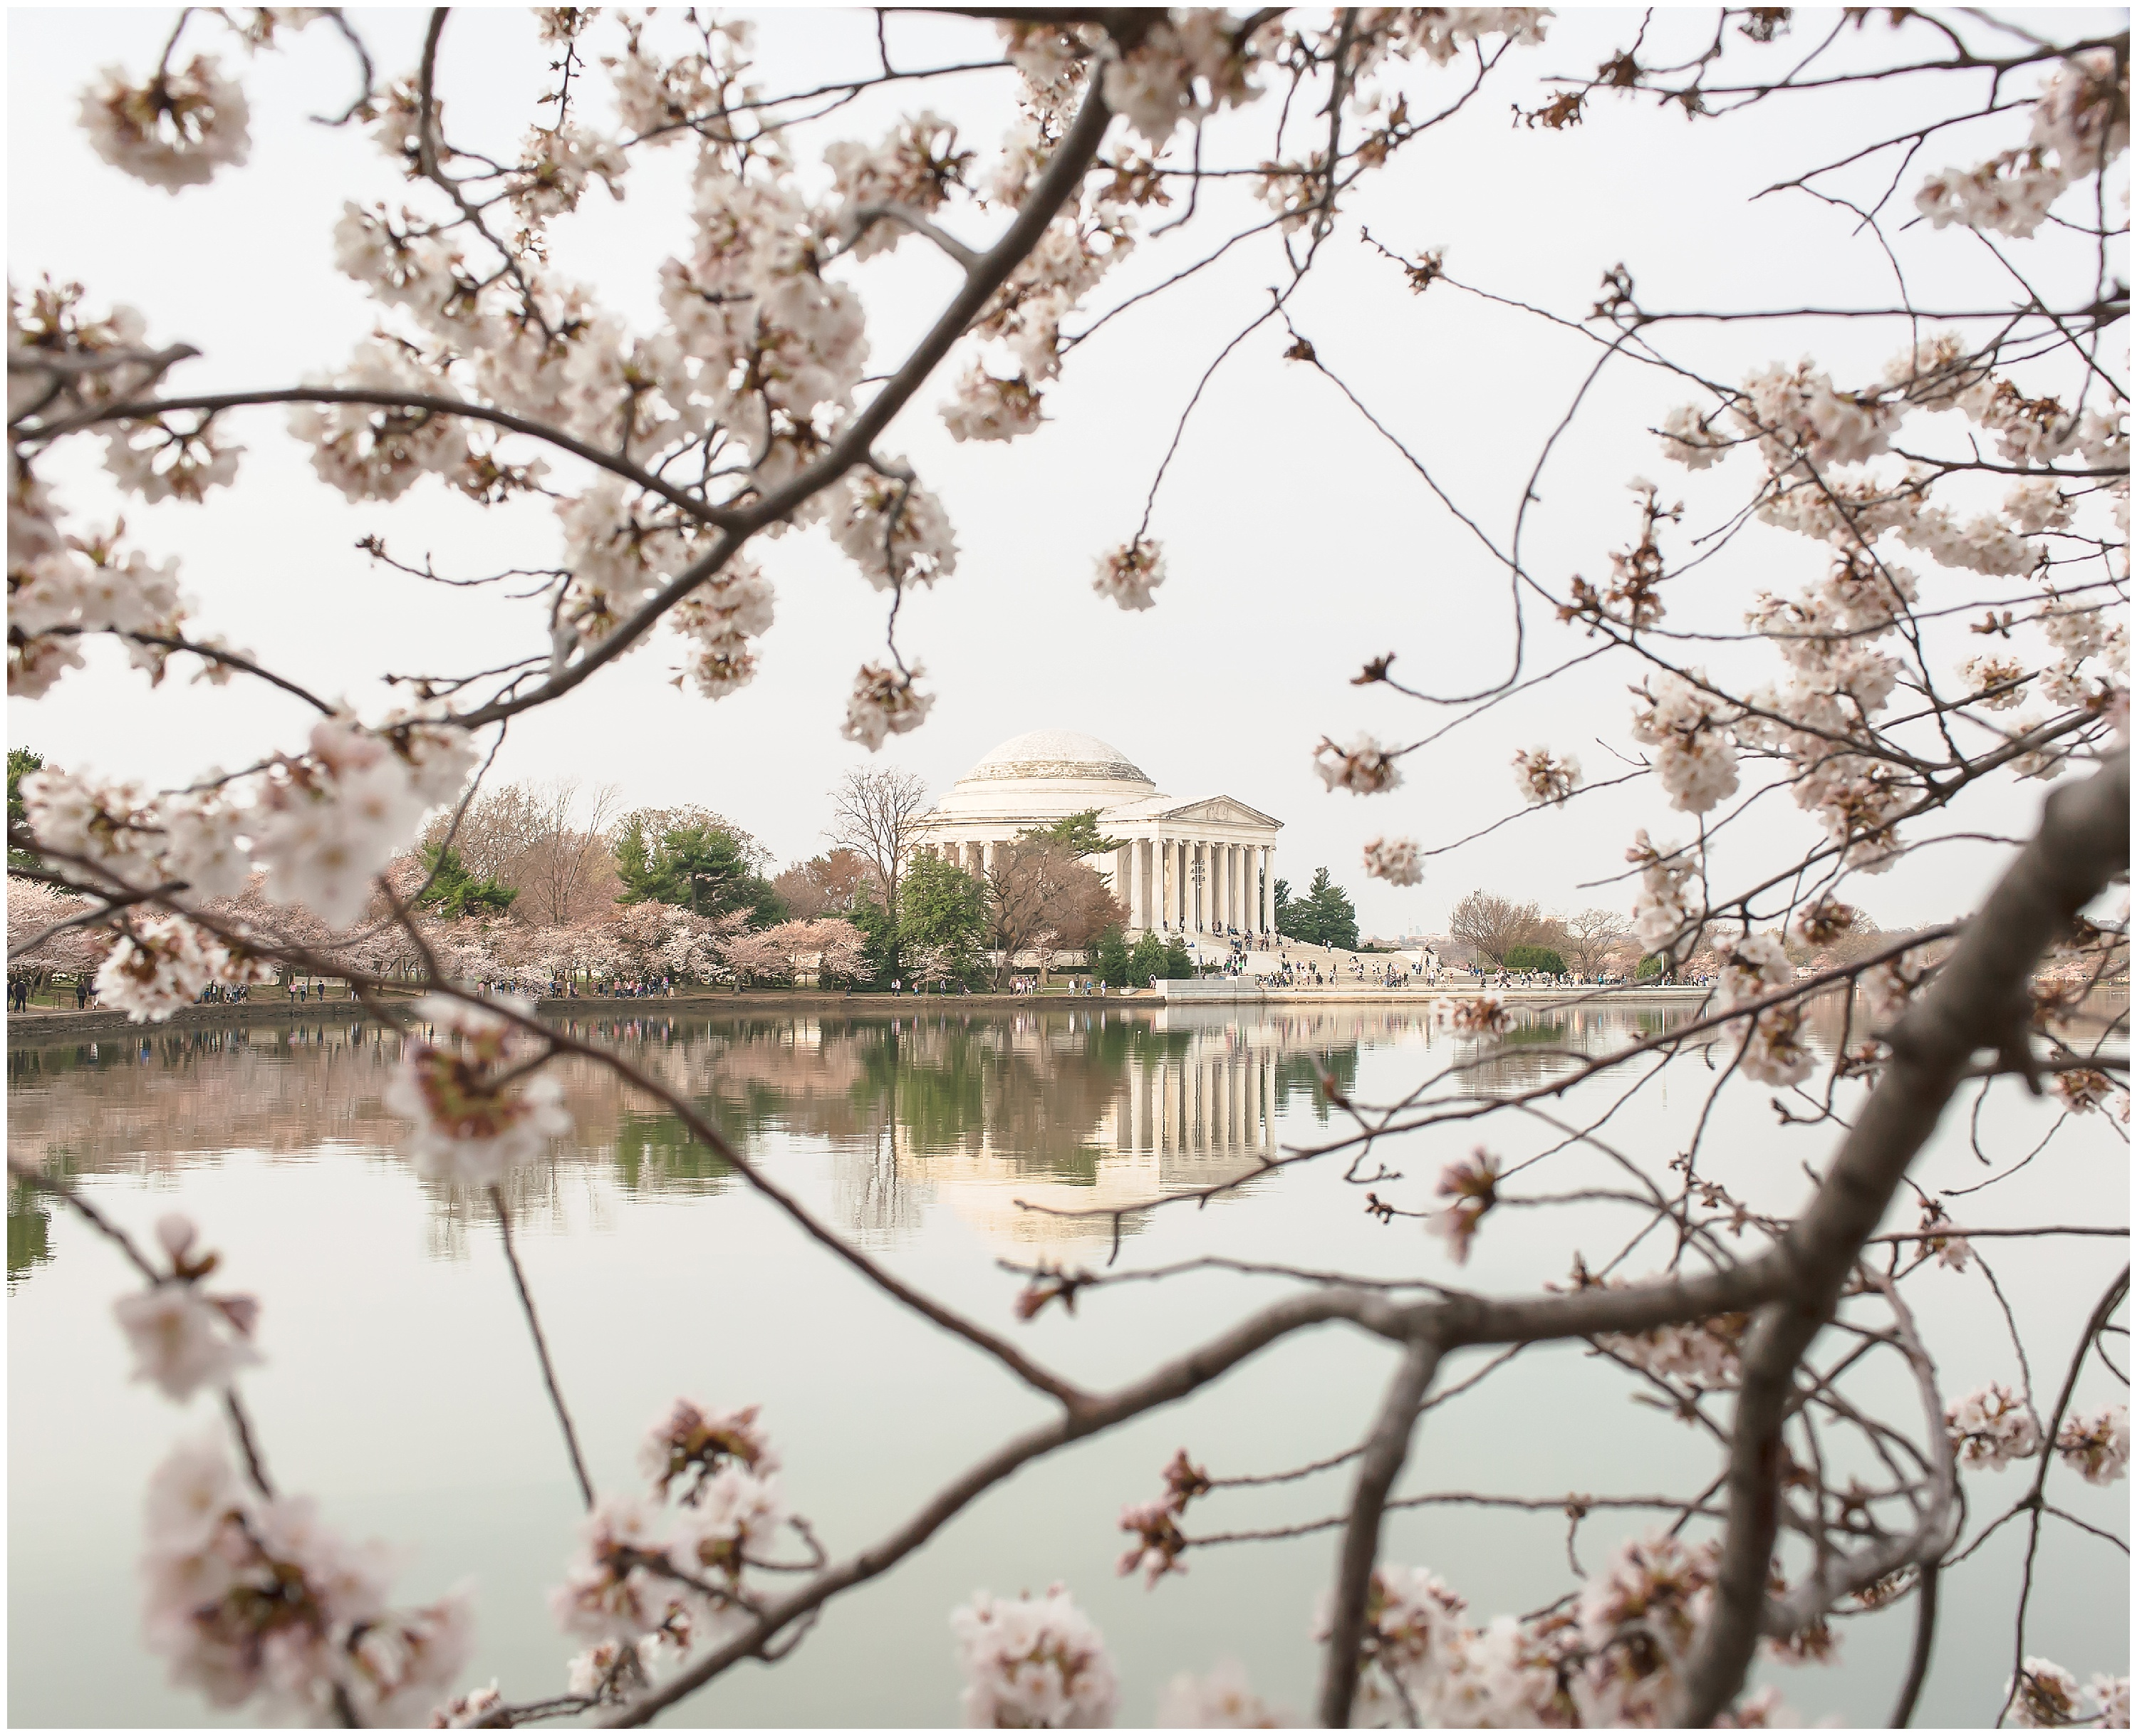 Cherry Blossom Festival, Tidal Basin, Jefferson Memorial